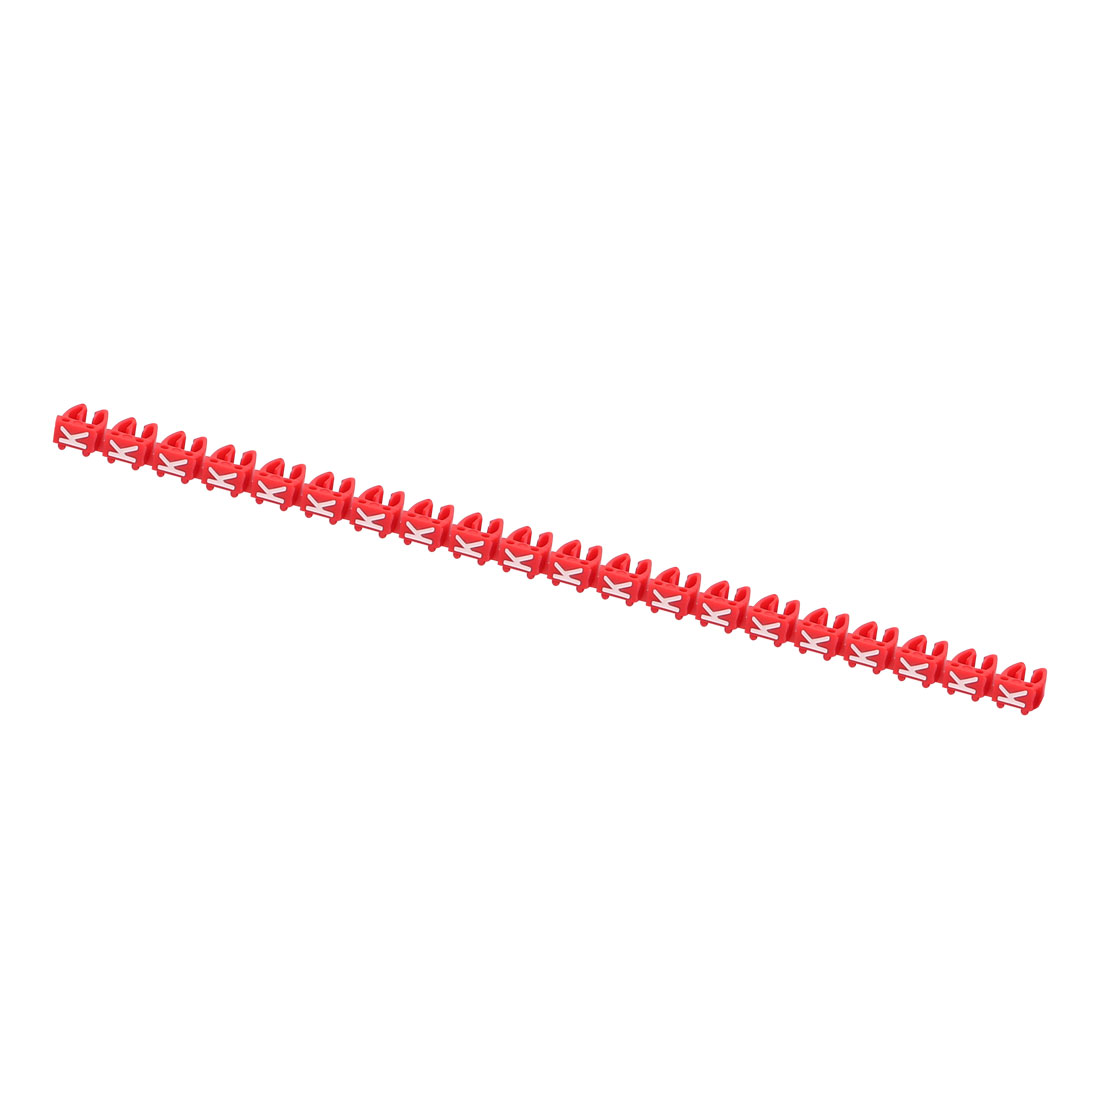 20Pcs Letters K Network Cable Labels Markers Red for 4.0-6.0mm Dia Cable